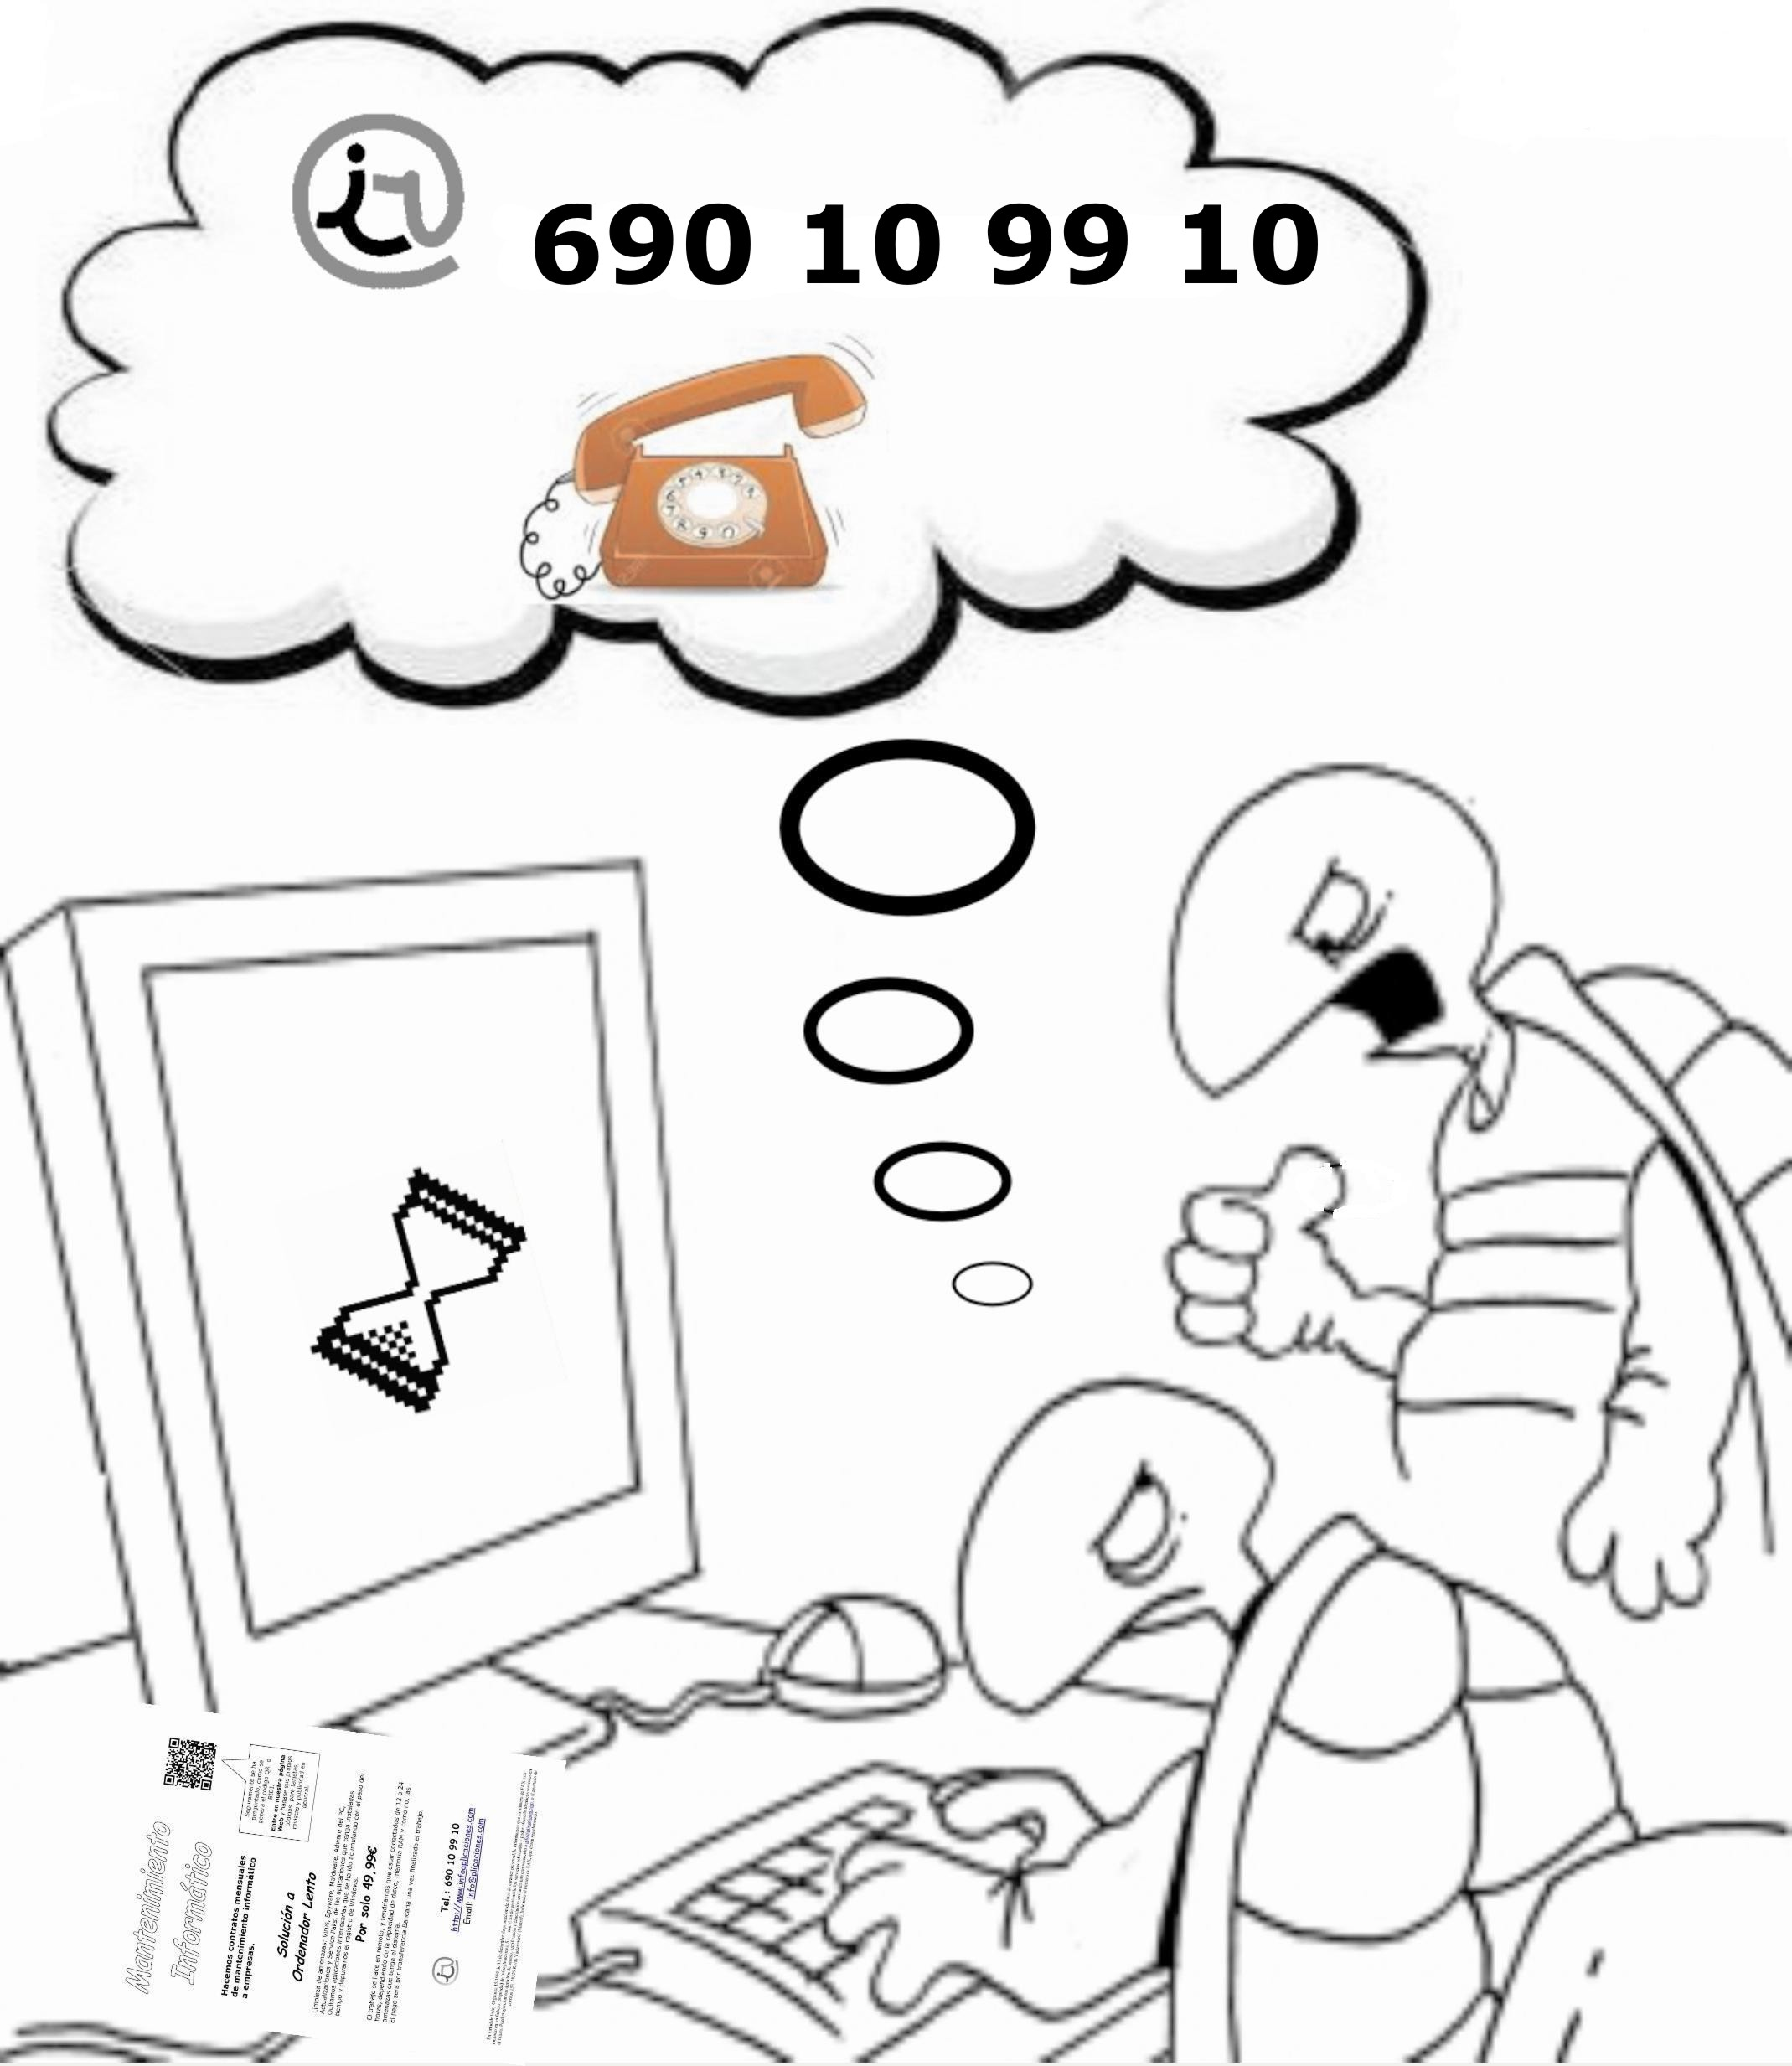 Reloj de arena reparar quitar-remover-virus-ordenador-lento-en-madrid-calle-san-cirilo-pelayos-de-la-presa-barcelona-valencia-sevilla-teo-arreglar-windows-xp-vista-7-8-10-acelerar-internet-optimizar-portatil-limpiar-pc  internet ordenador pc windows xp vista 7 8.1 10